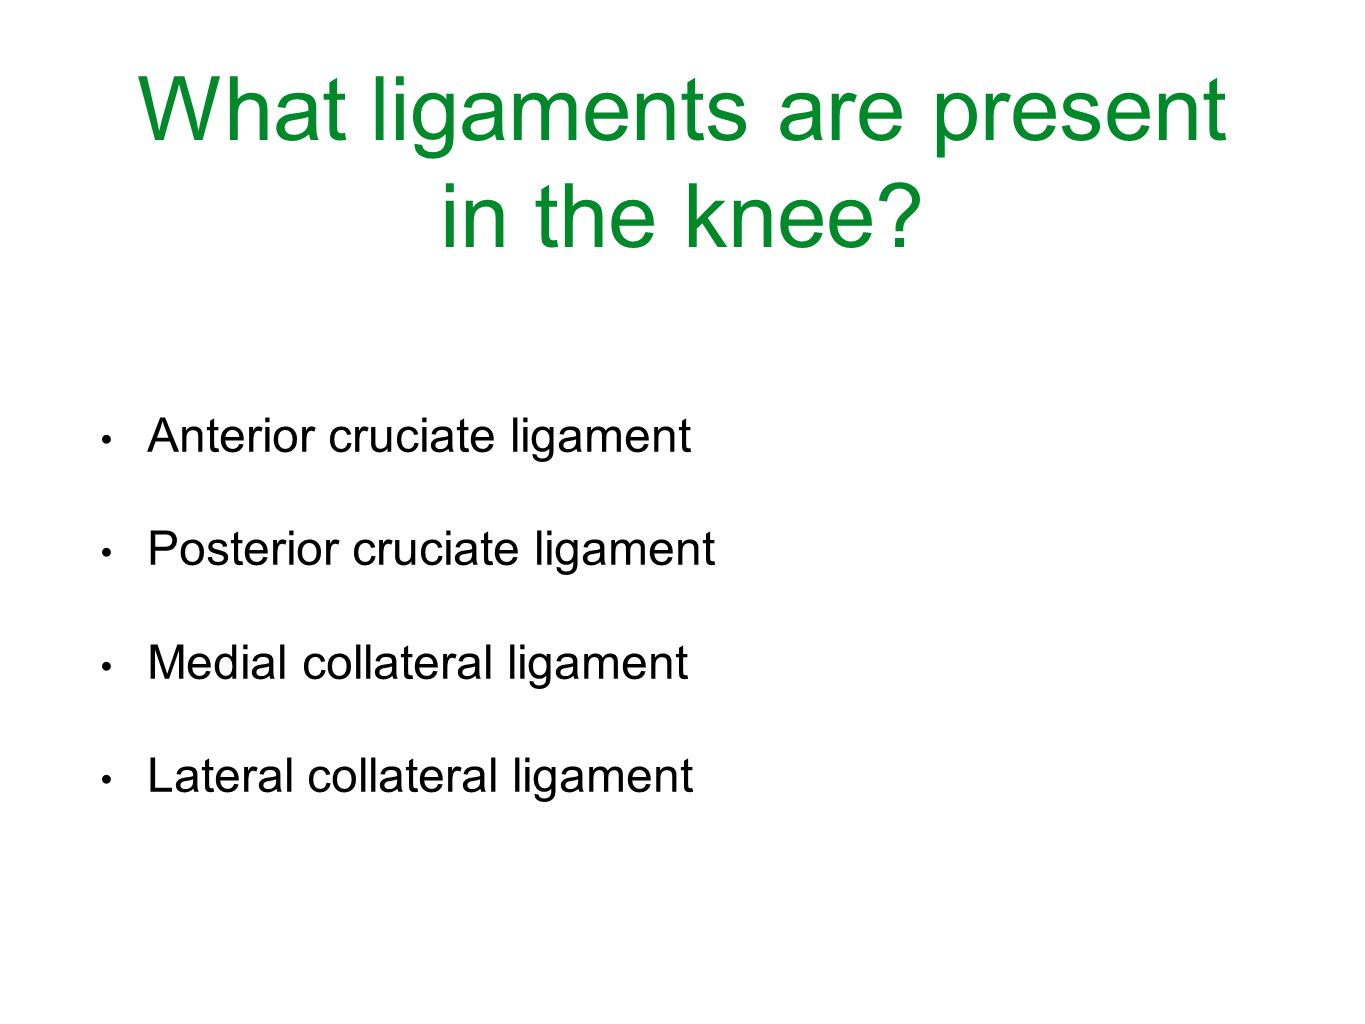 What ligaments are present in the knee